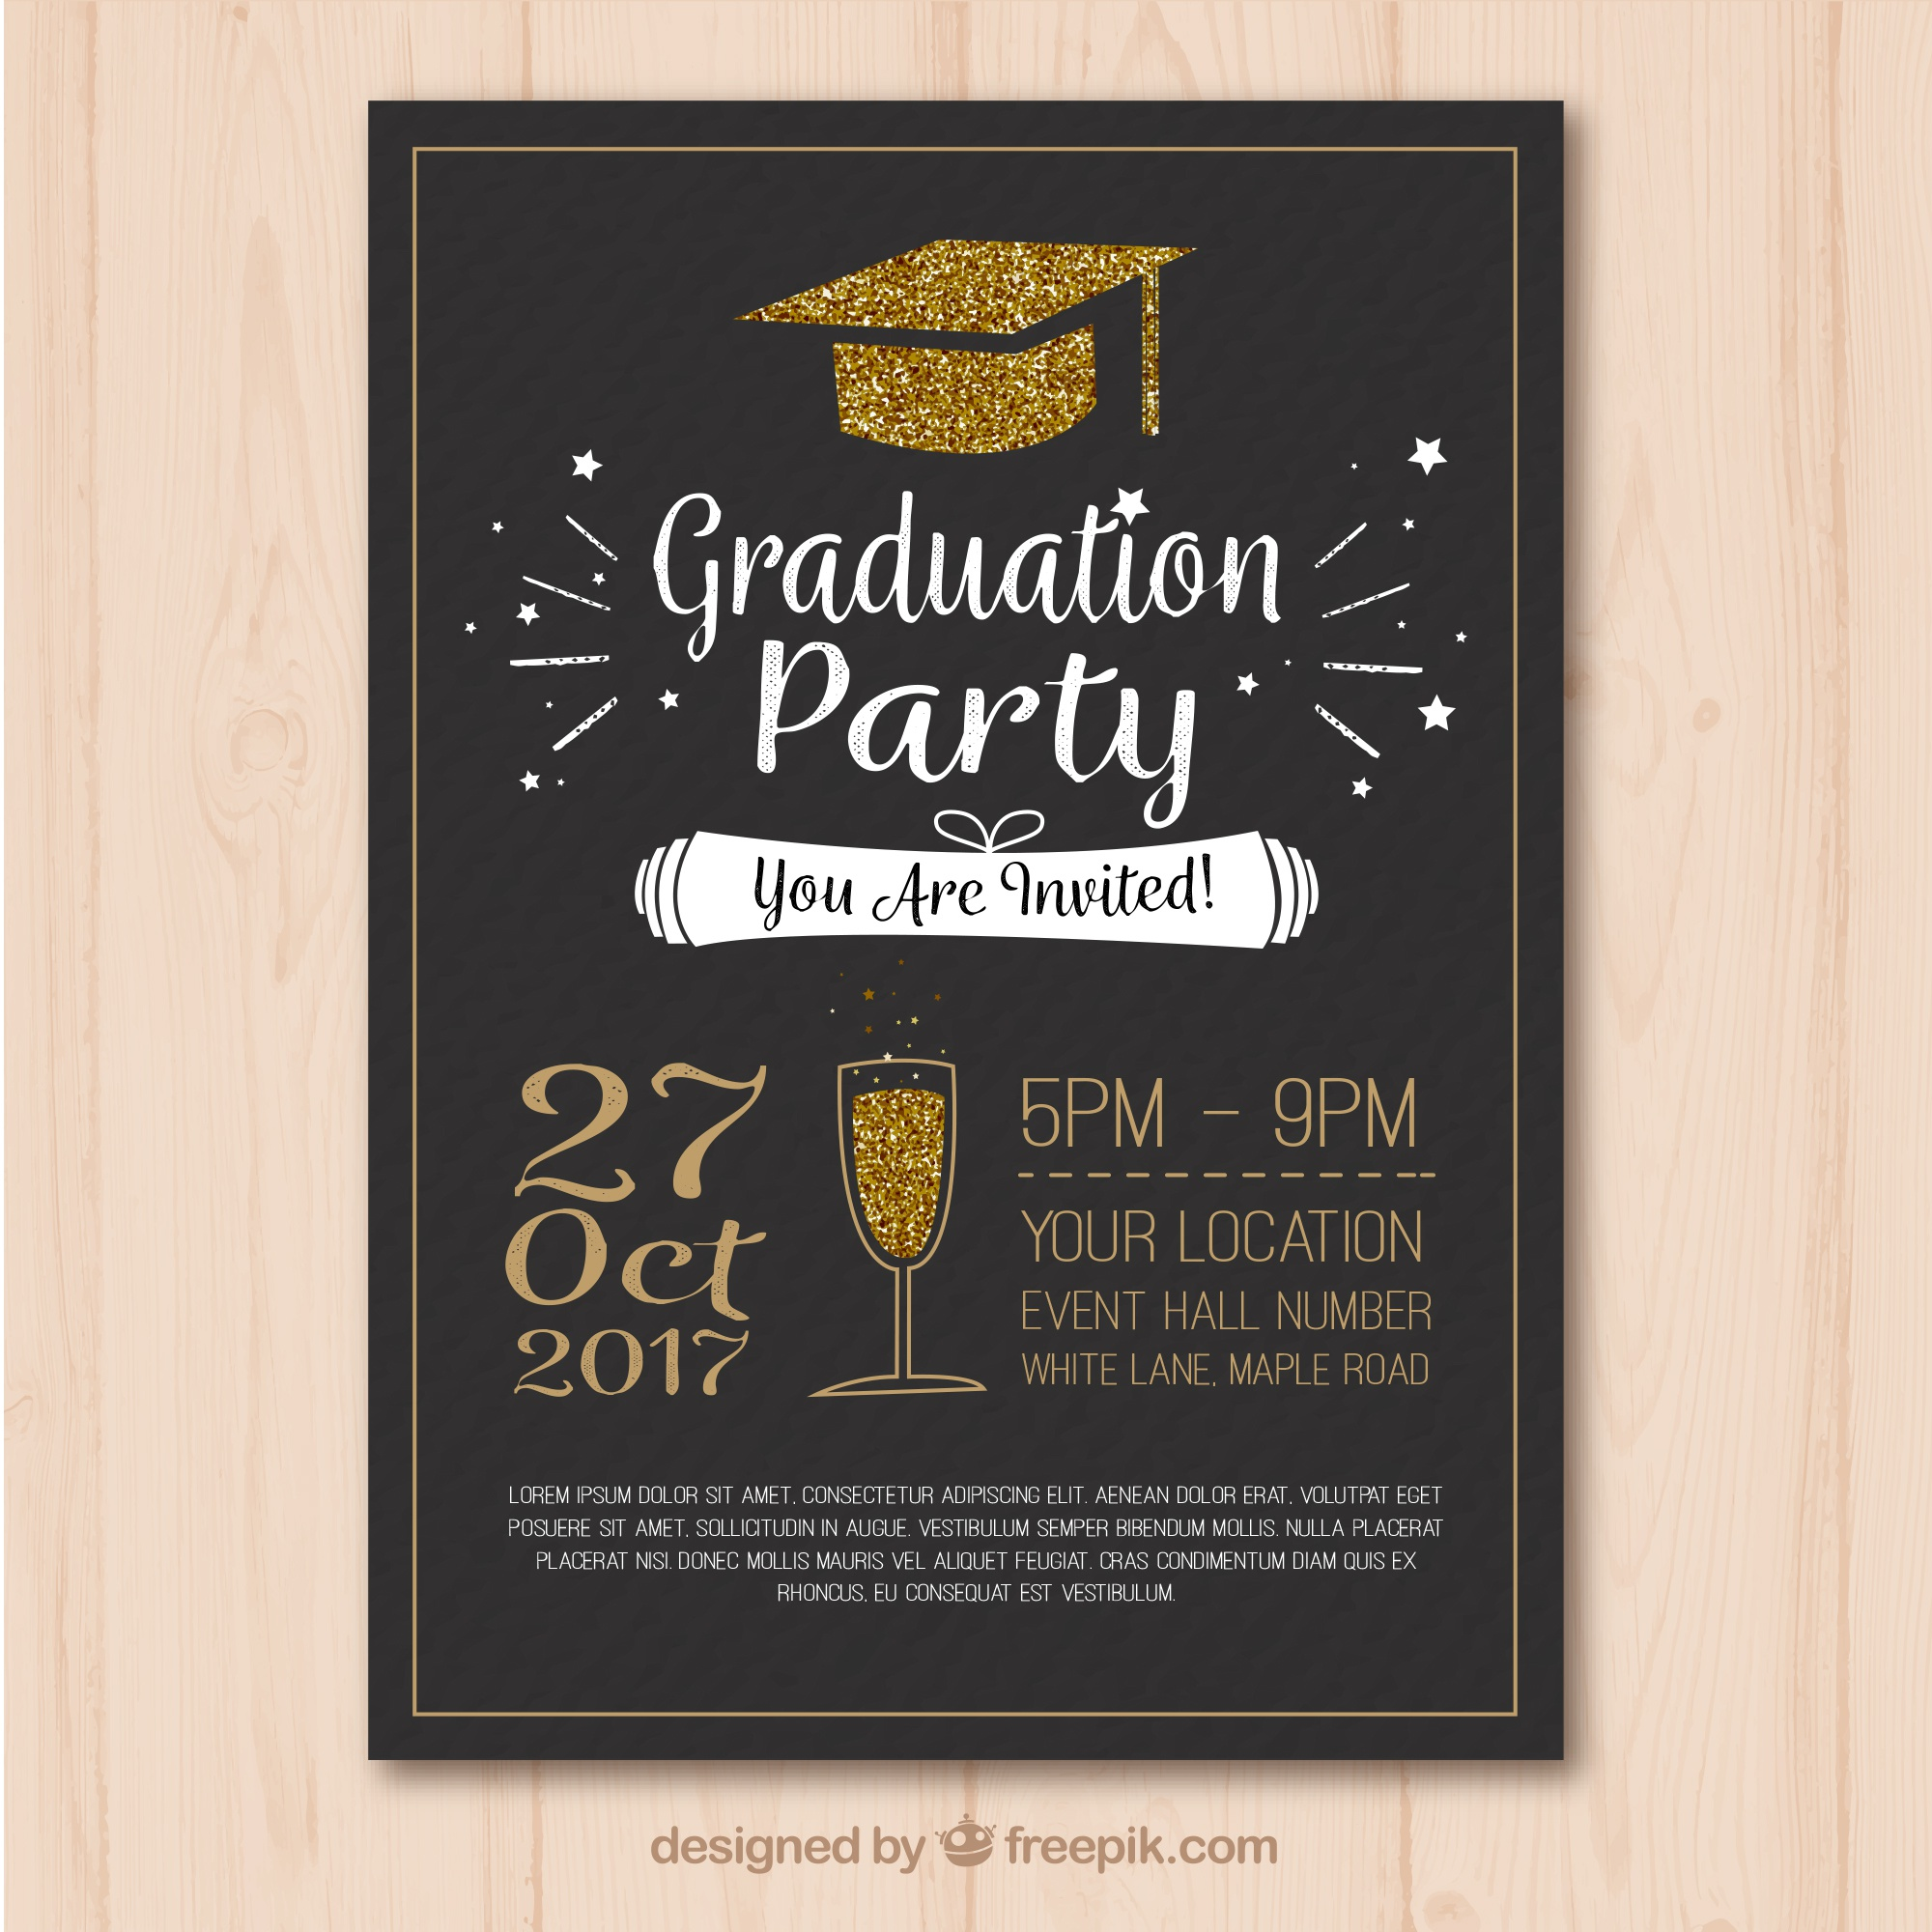 Stylish template of graduation party poster with golden elements